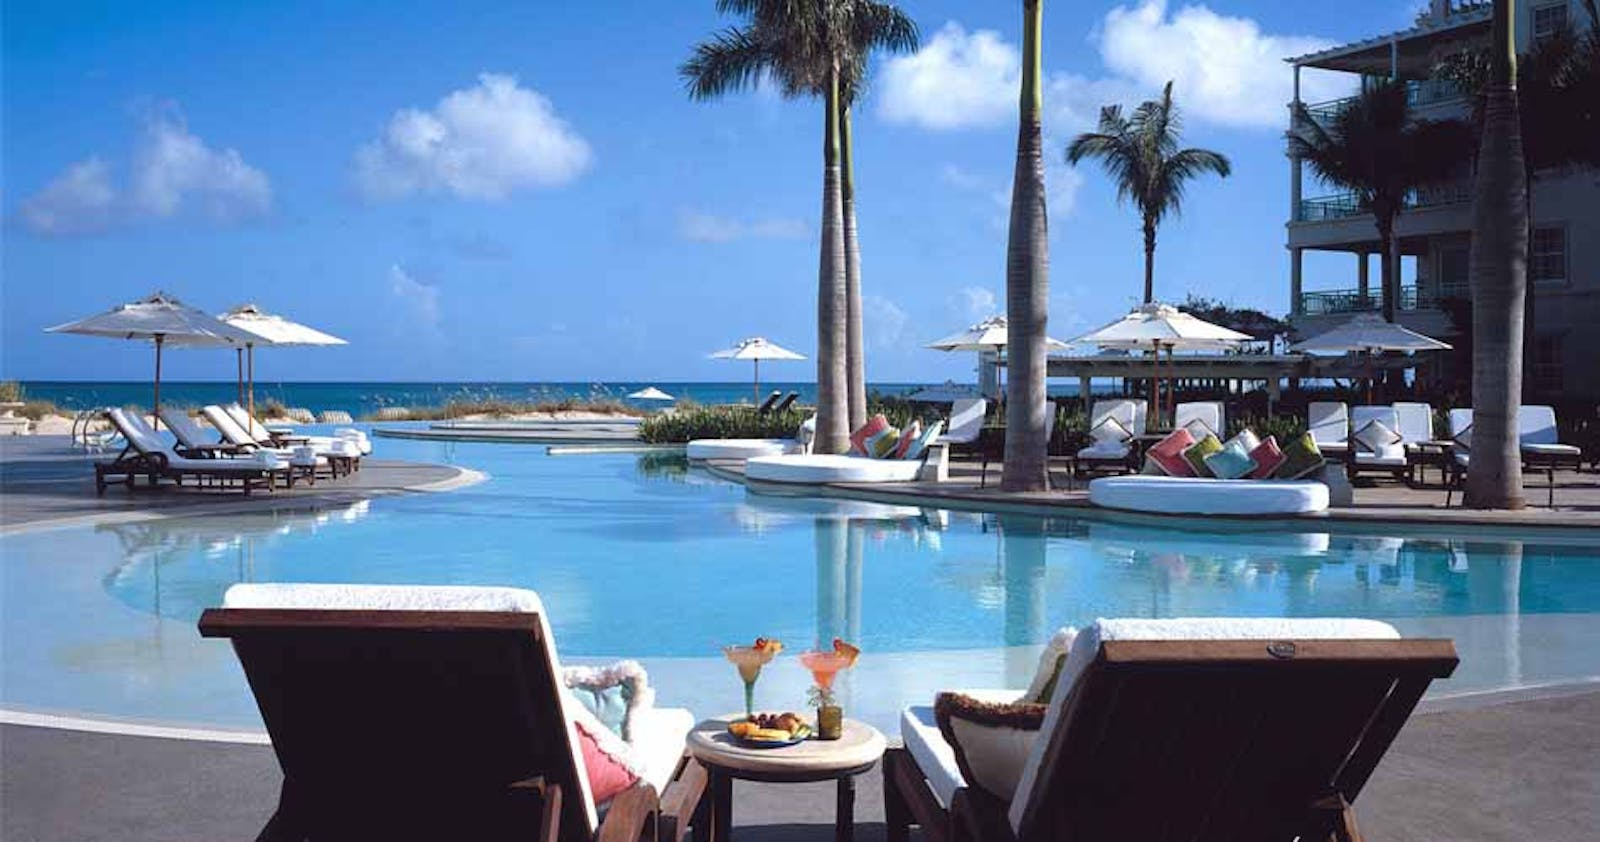 Poolside relaxing at The Regent Palms Turks & Caicos